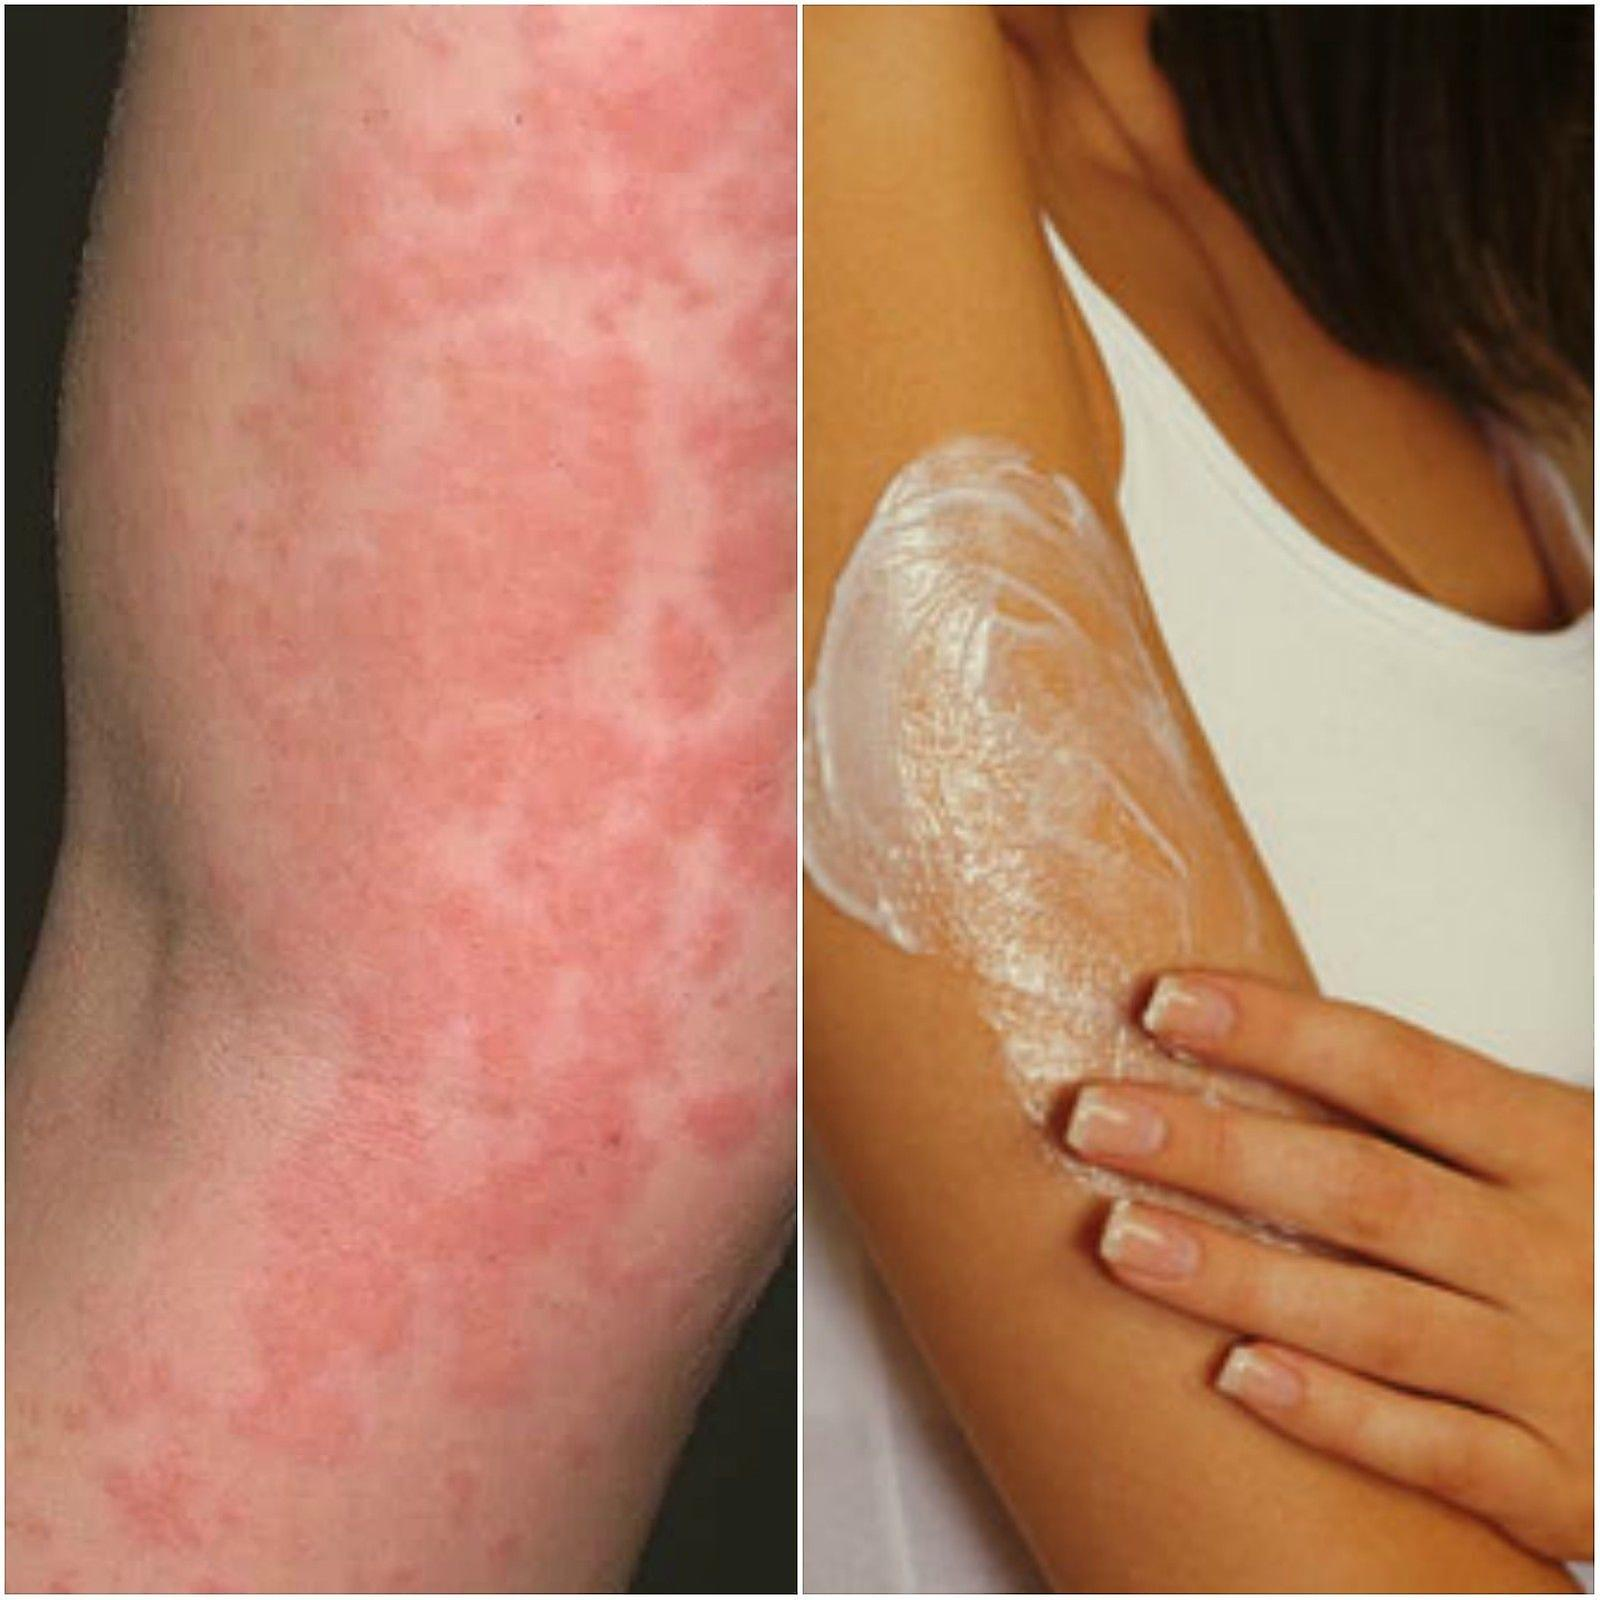 PrrEze Pityriasis rosea relief.8 ounce All natural. No steroids. No chemicals.